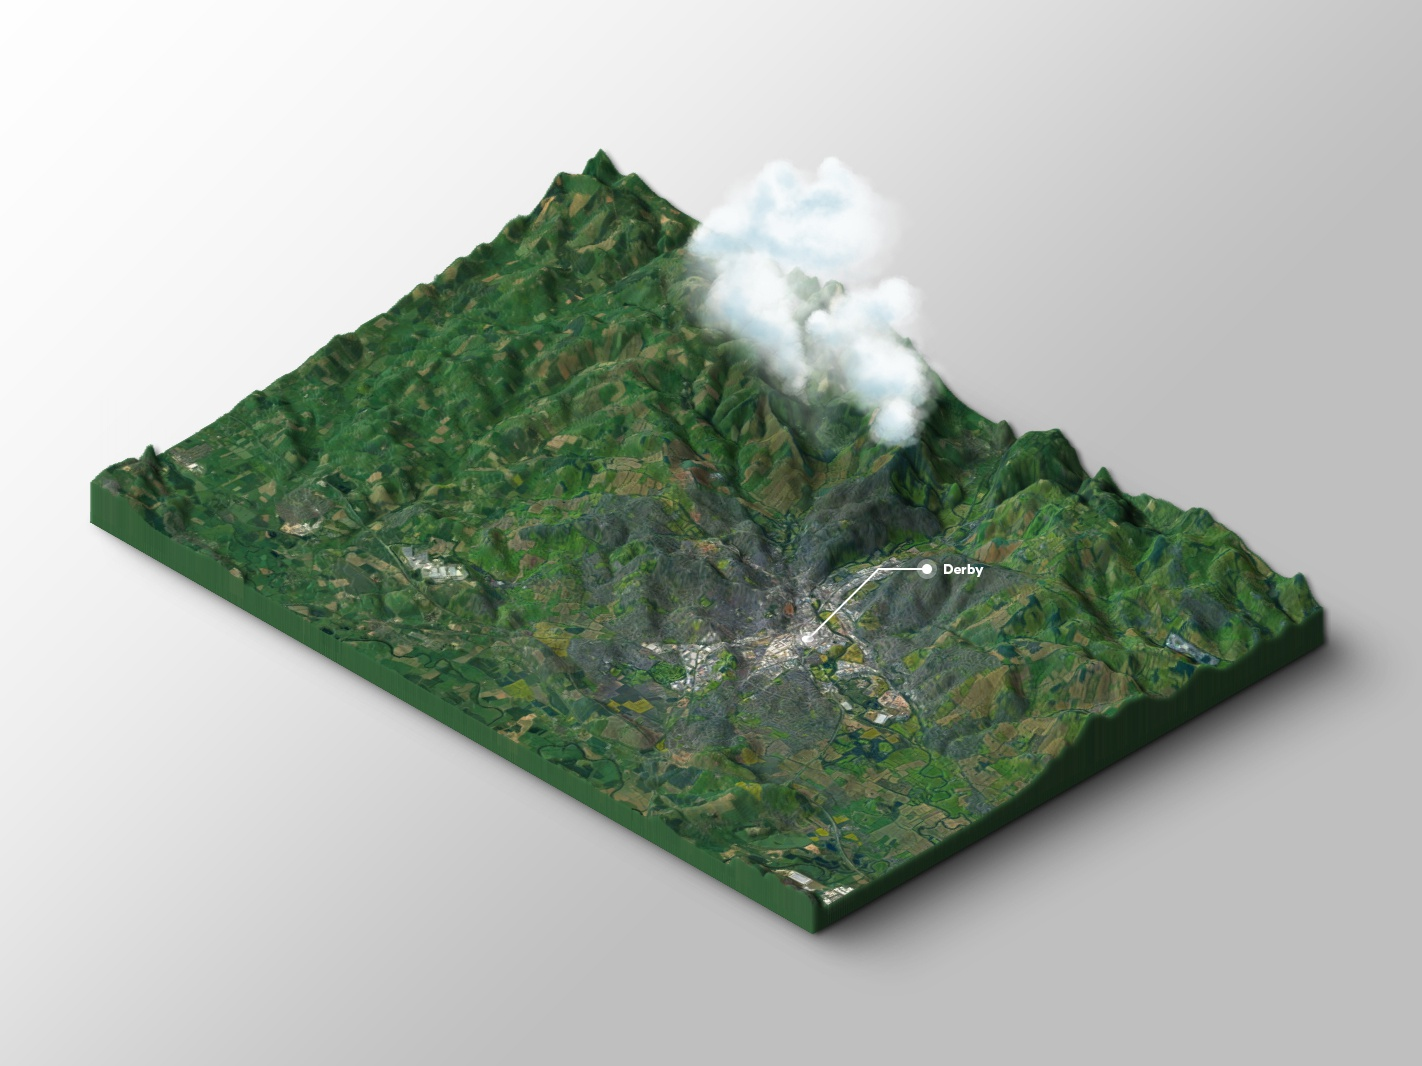 Derby 3D map clouds derby 3d mapping 3d map map